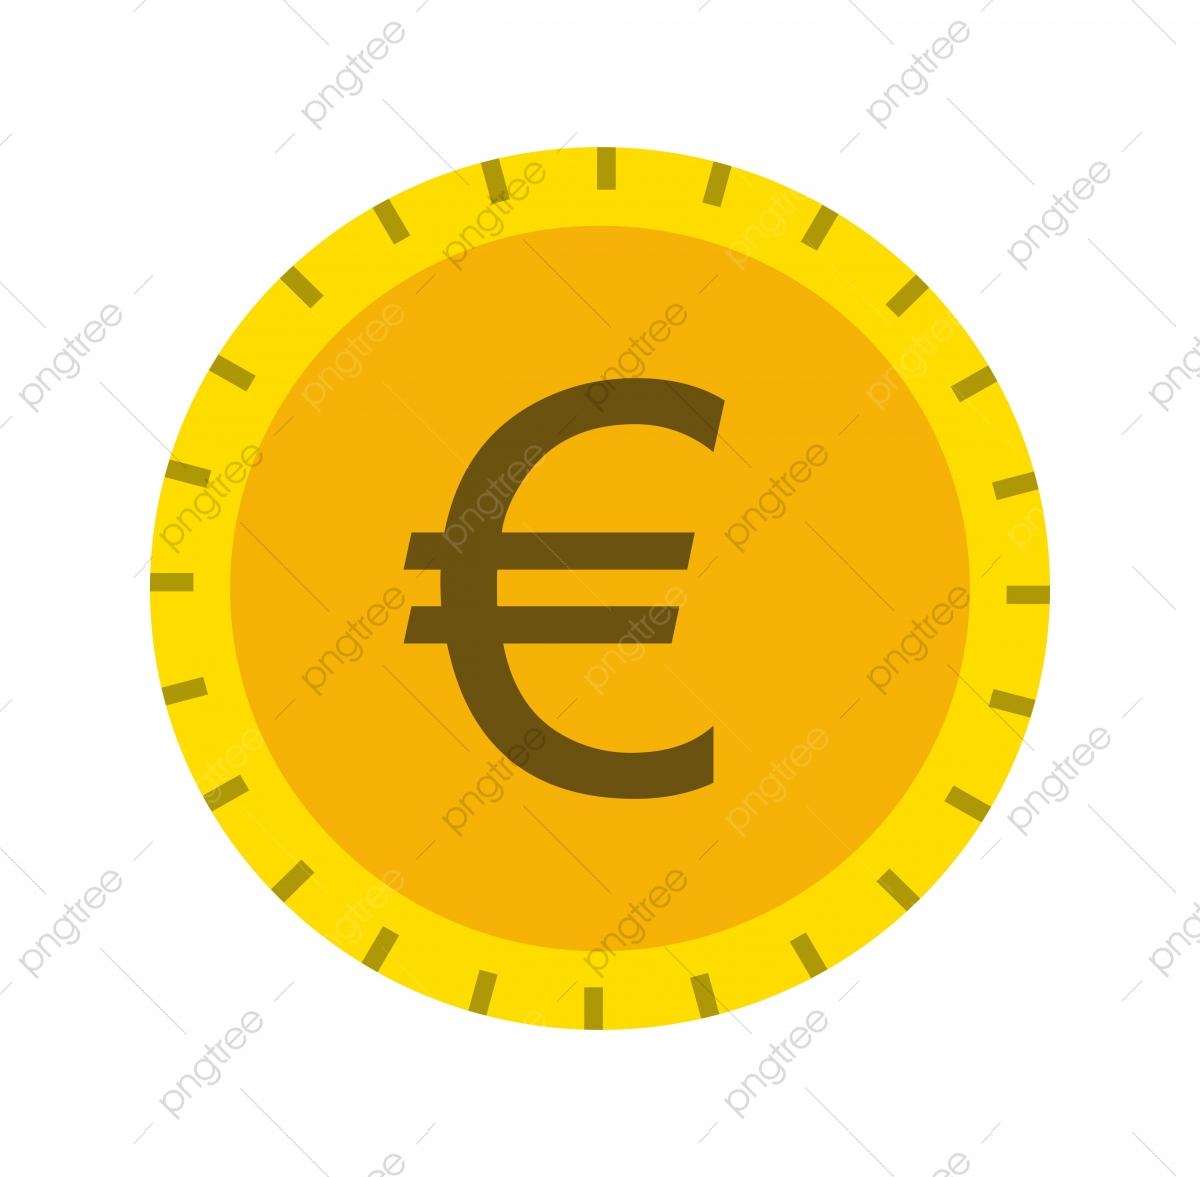 euros png images vector and psd files free download on pngtree https pngtree com freepng euro flat icon 3700200 html